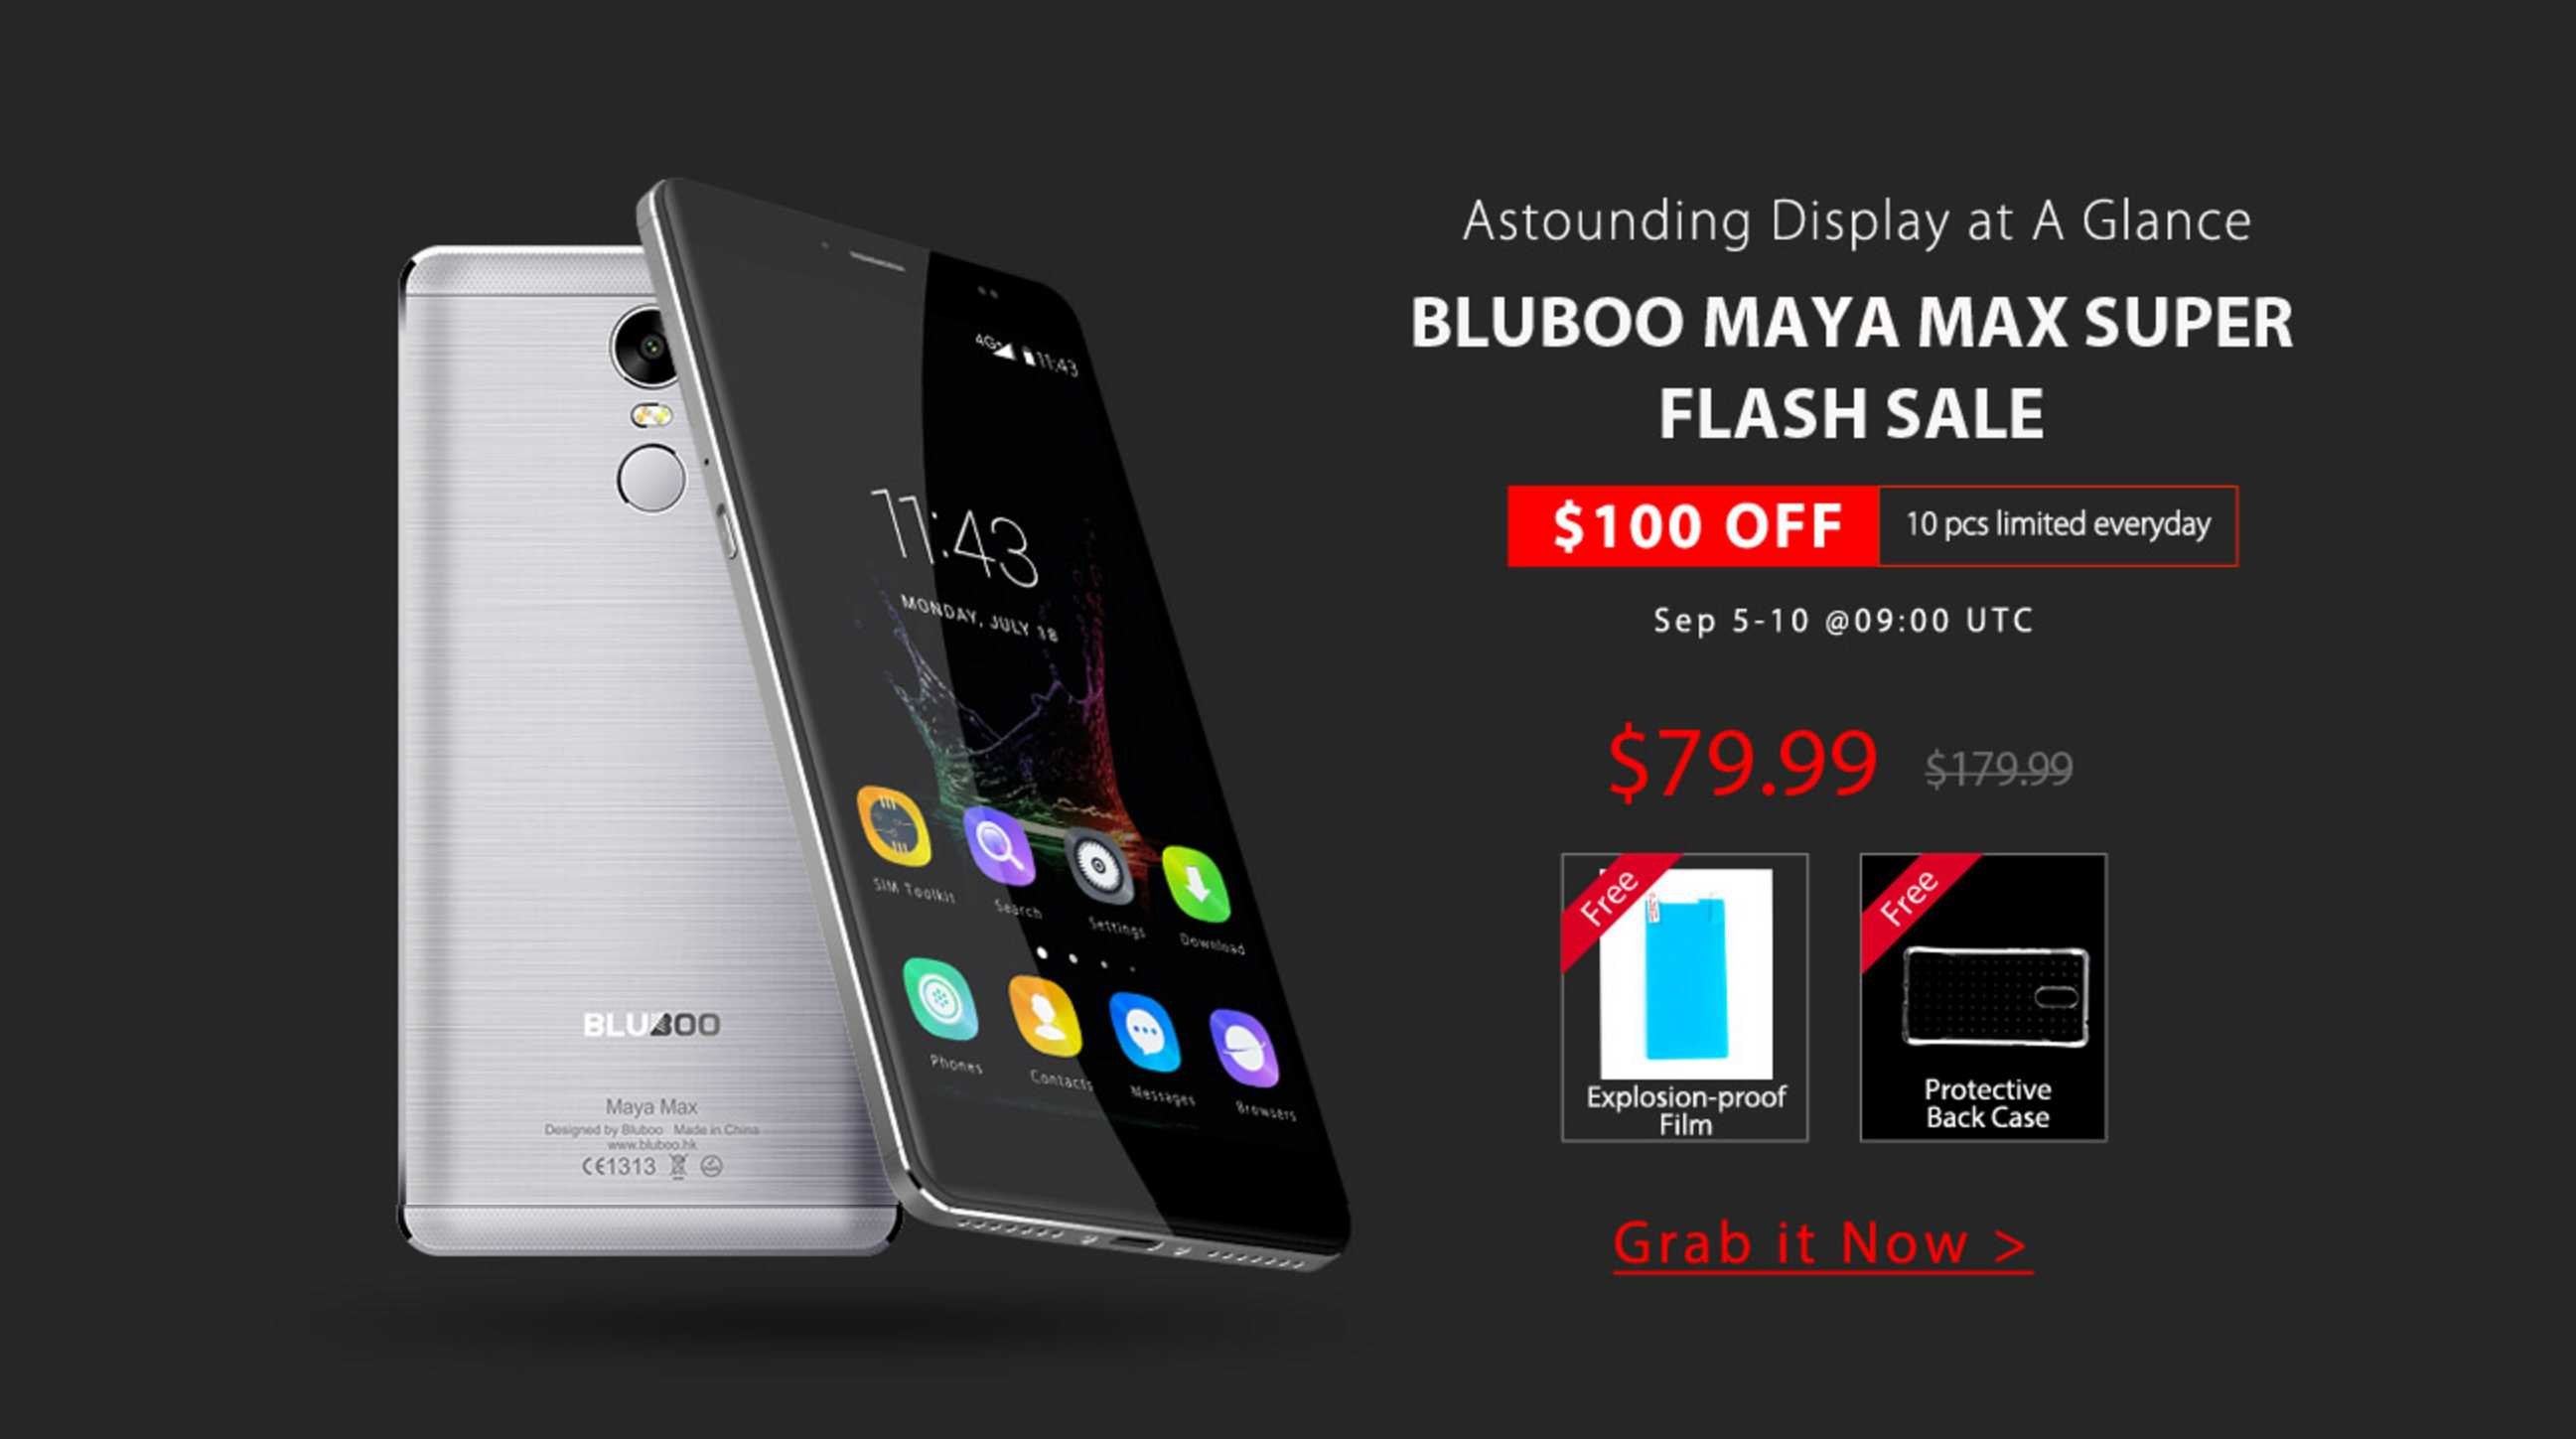 screencapture-gearbest-promotion-bluboo-max-promo-special-837-html-1473528213304-copy-2